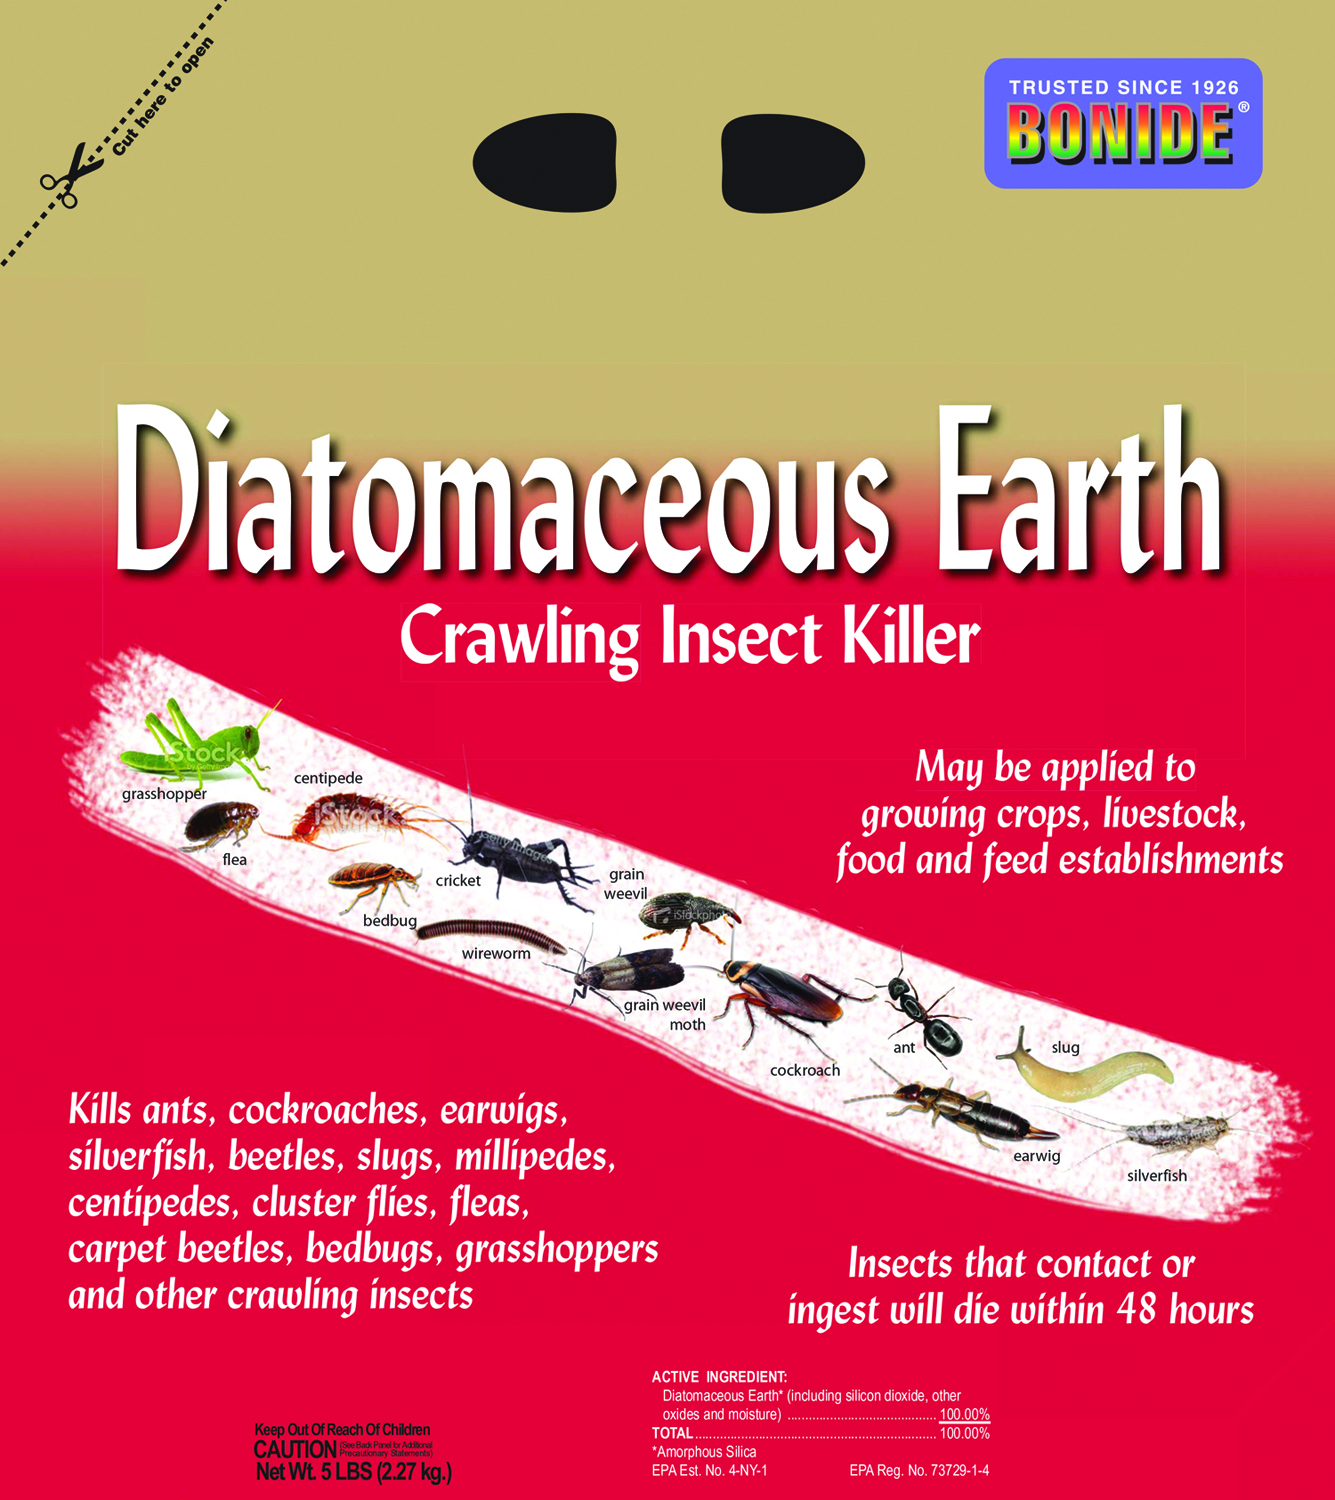 DIATOMACEOUS EARTH CRAWLING INSECT KILLER